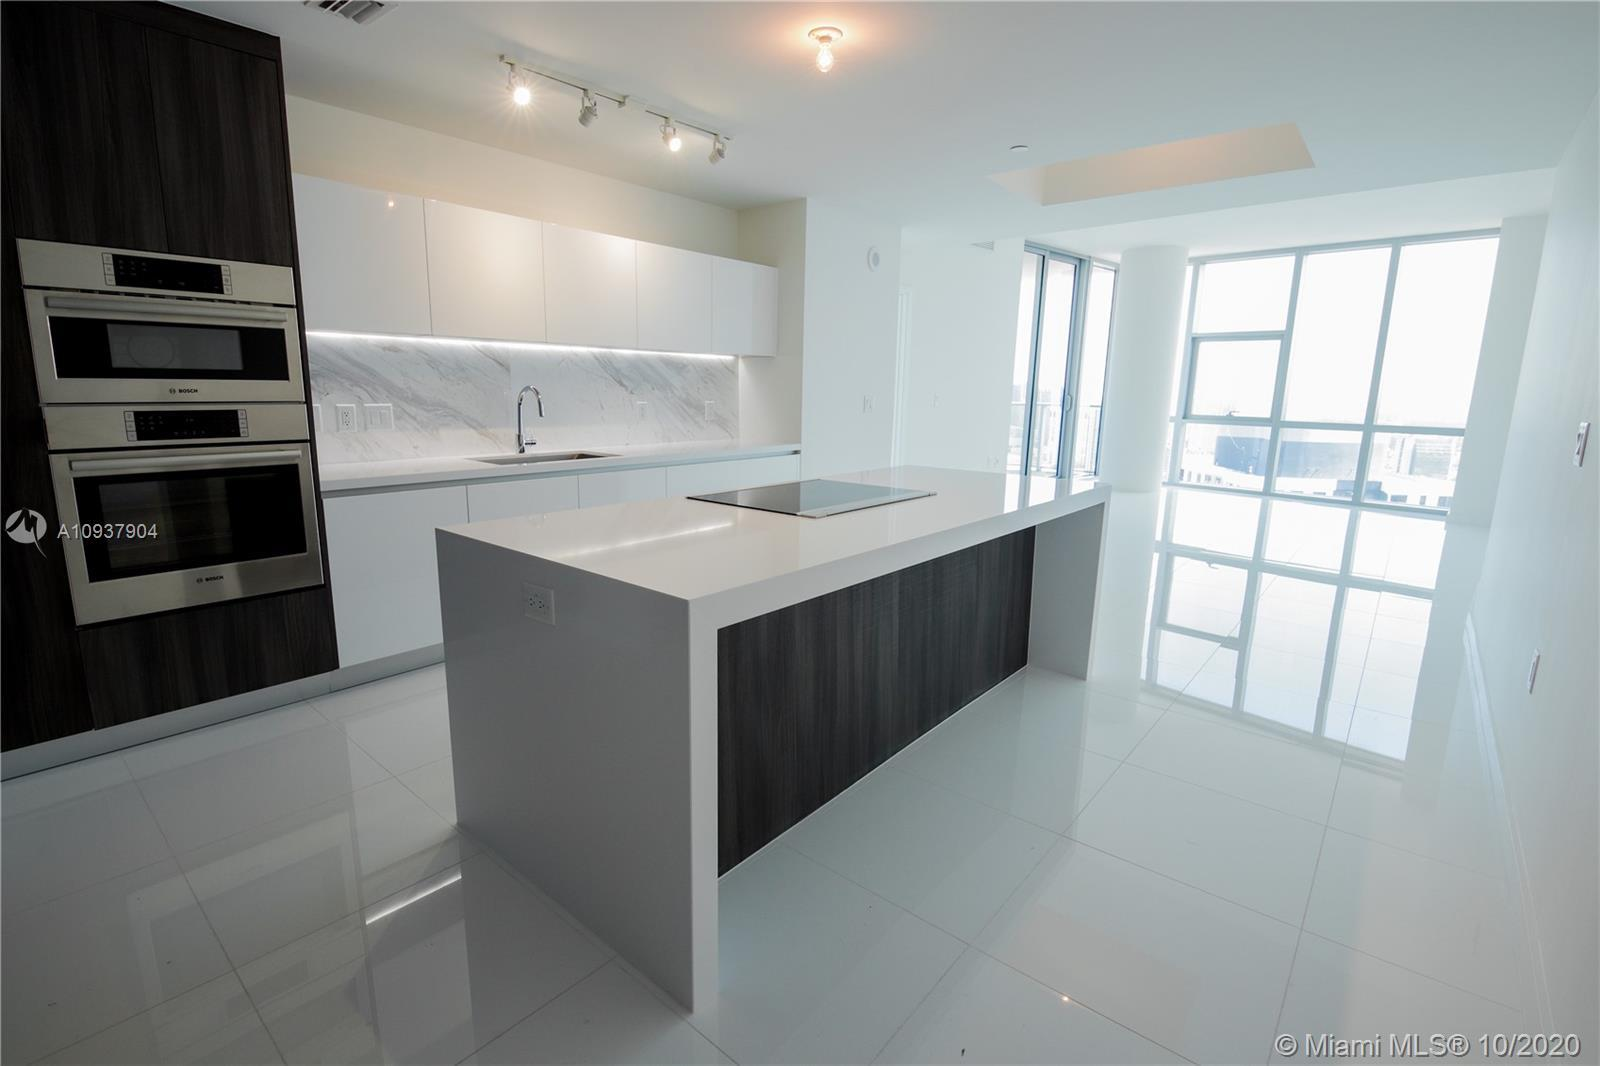 LUXURY PARAMOUNT MIAMI WORLD CENTER : 3 Beds /4 Baths 10 Ft ceilings / Private elevator foyer. Panor